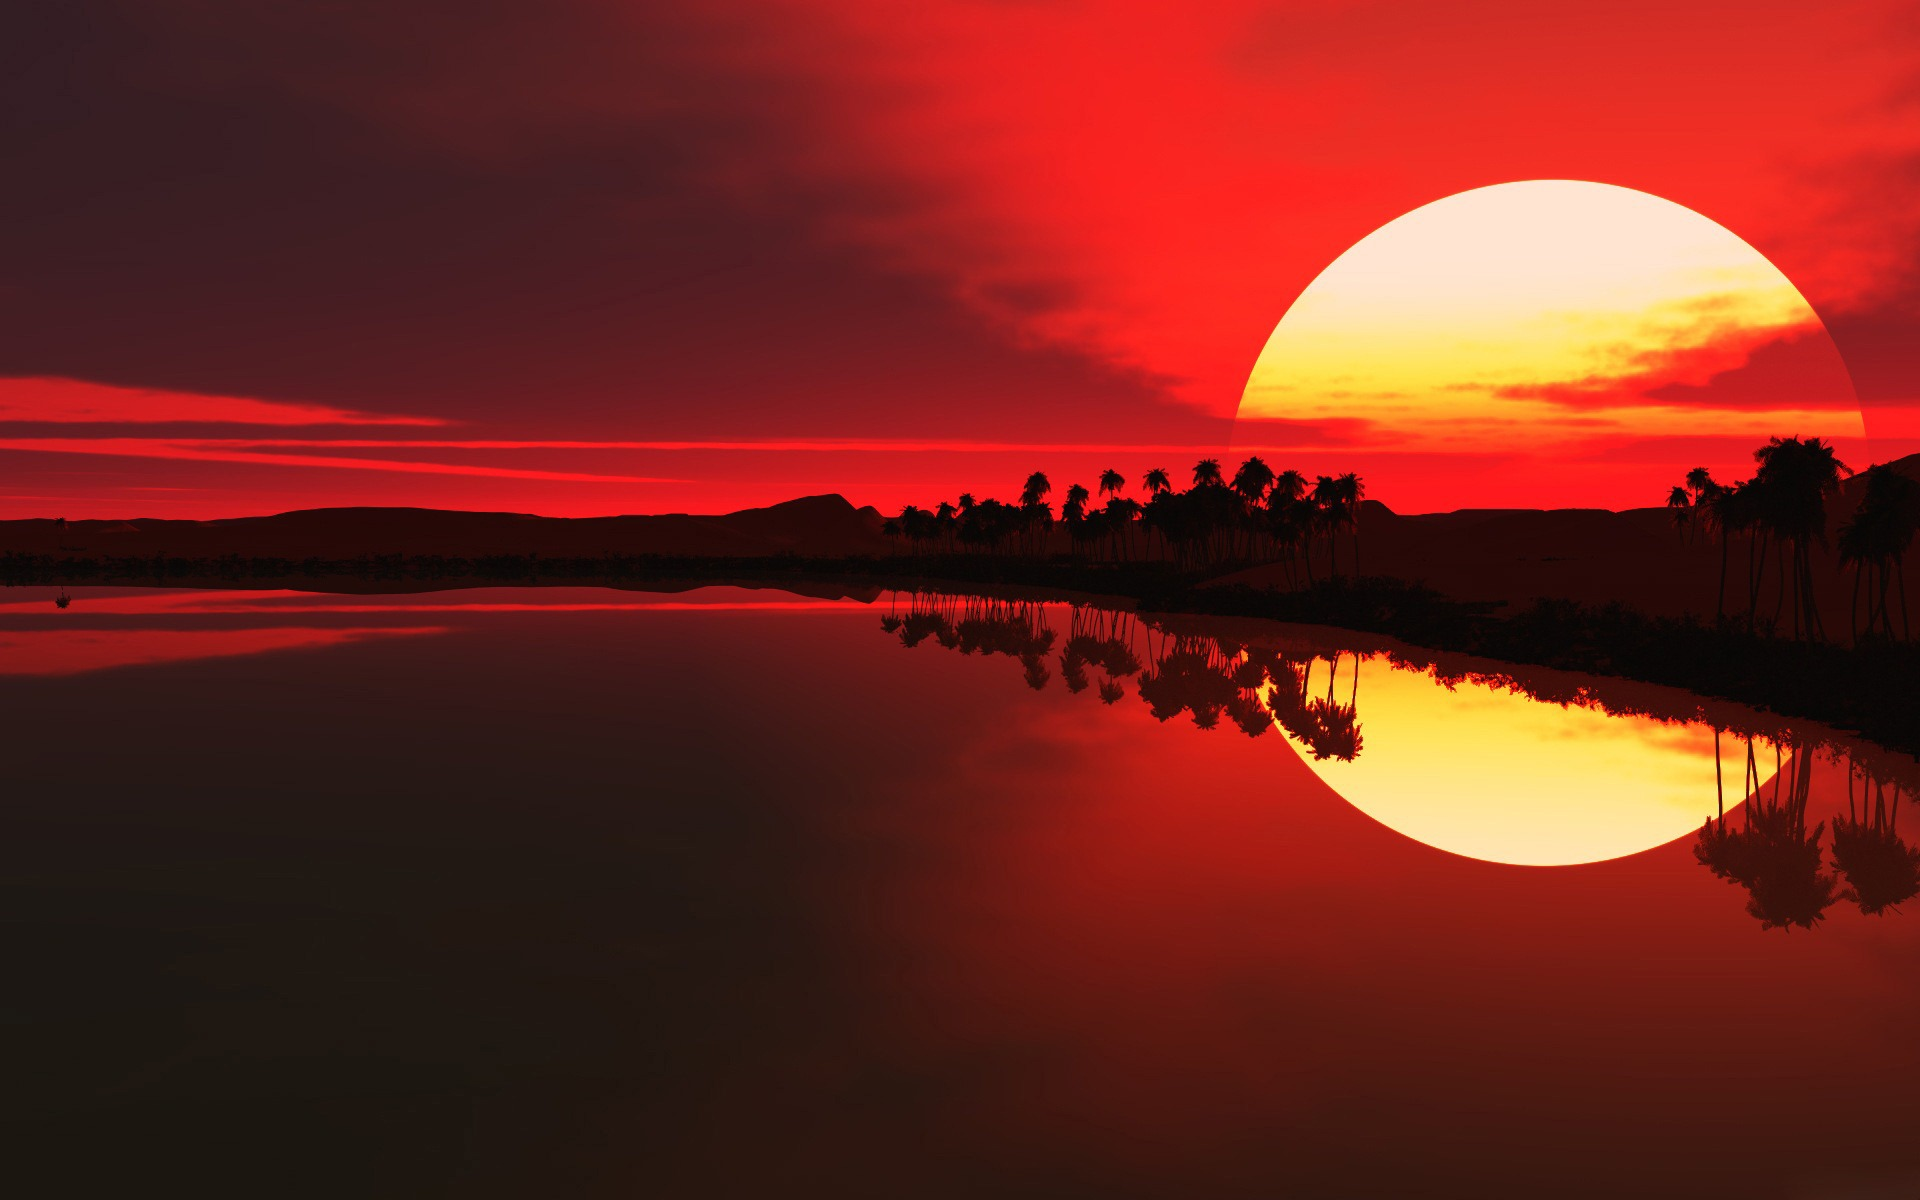 Marvelous Perfect Sunset Desktop Wallpaper 1920x1200px